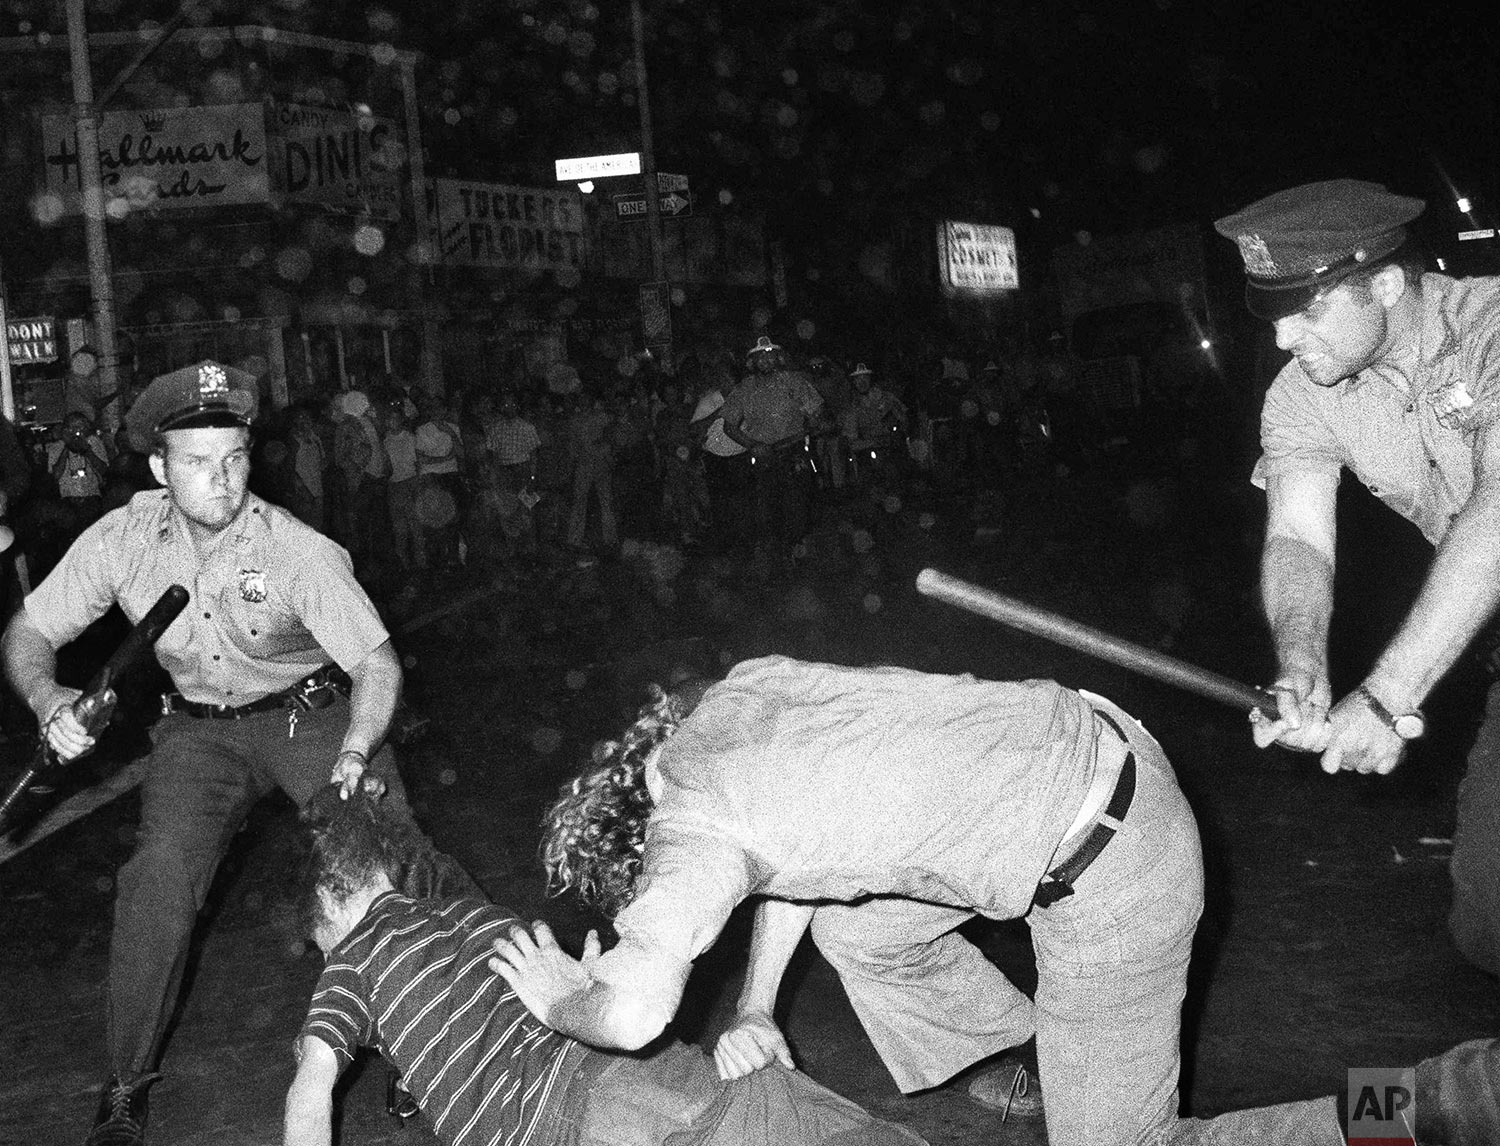 In this Aug. 31, 1970 file photo, an NYPD officer grabs a youth by the hair as another officer clubs a young man during a confrontation in Greenwich Village after a Gay Power march in New York. A year earlier, the June 1969 uprising by young gays, lesbians and transgender people in New York City, clashing with police near a bar called the Stonewall Inn, was a vital catalyst in expanding LGBT activism nationwide and abroad. (AP Photo)